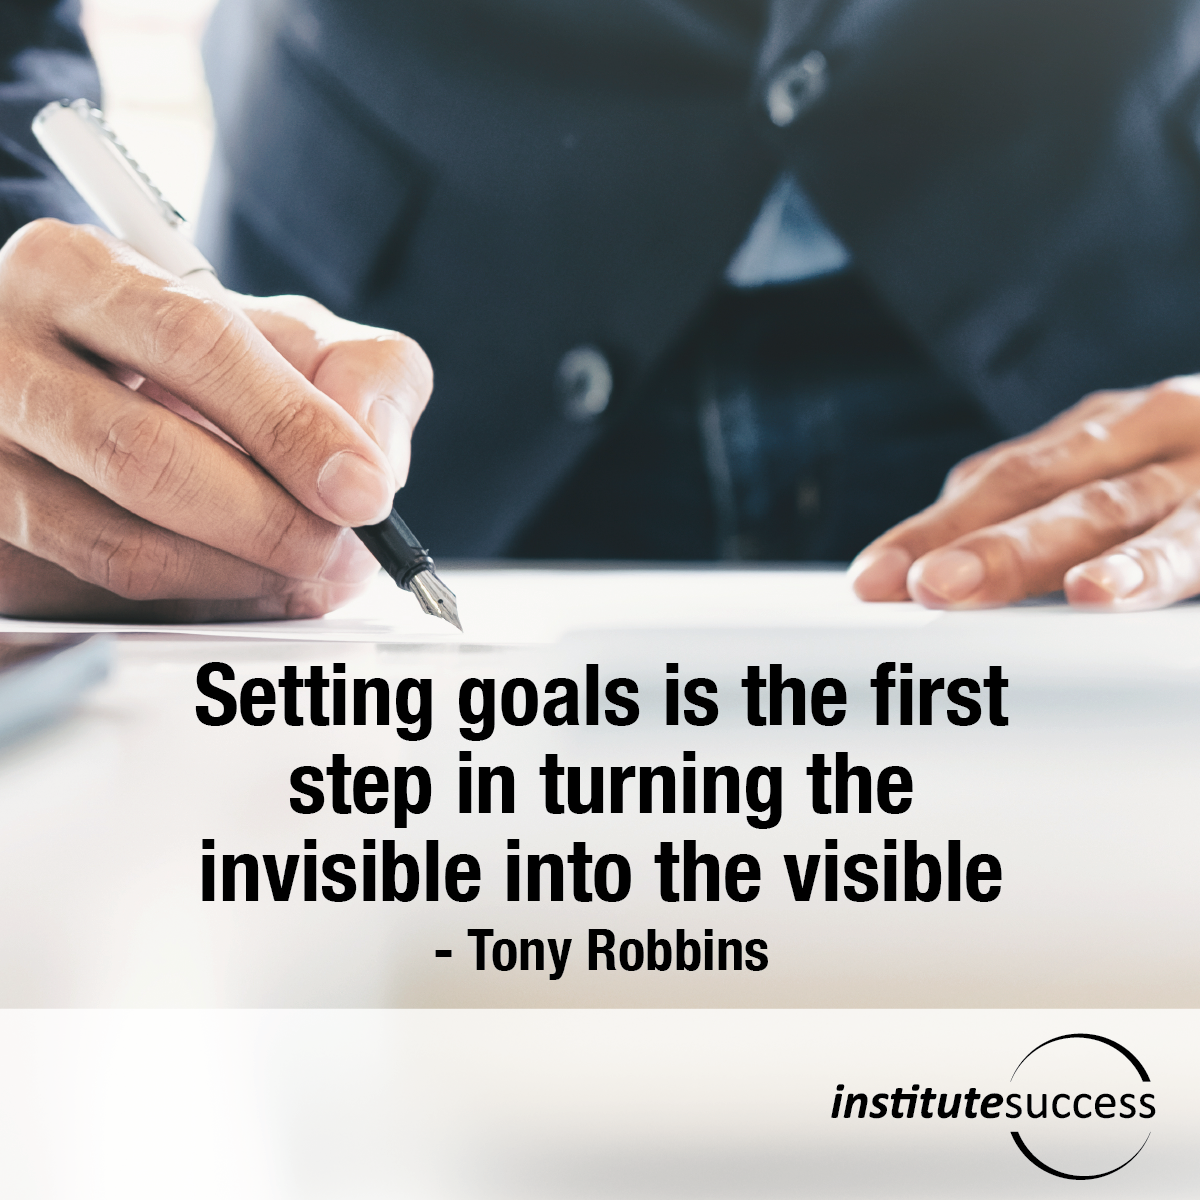 Setting goals is the first step in turning the invisible into the visible – Tony Robbins